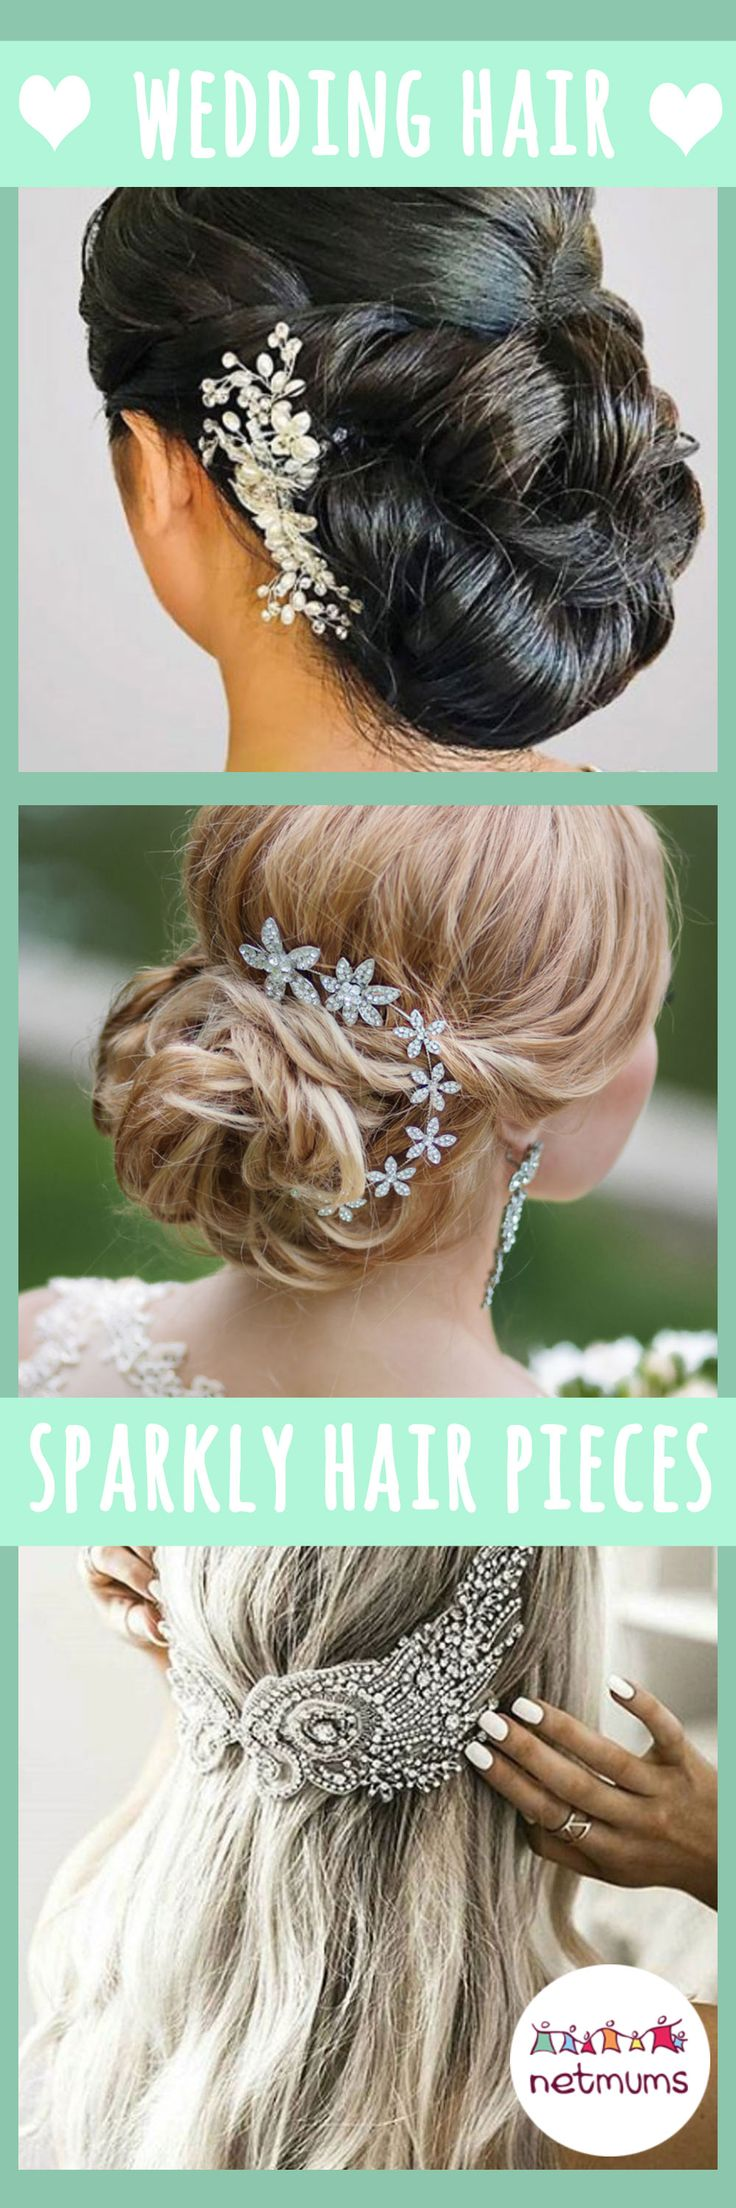 For many, finding the perfect wedding hairstyle is crucial for the big day. You only get one choice so the pressure really is on to pick the best style to suit you. Why not try some gorgeous hair clips or other sparkly decorations for your big day?